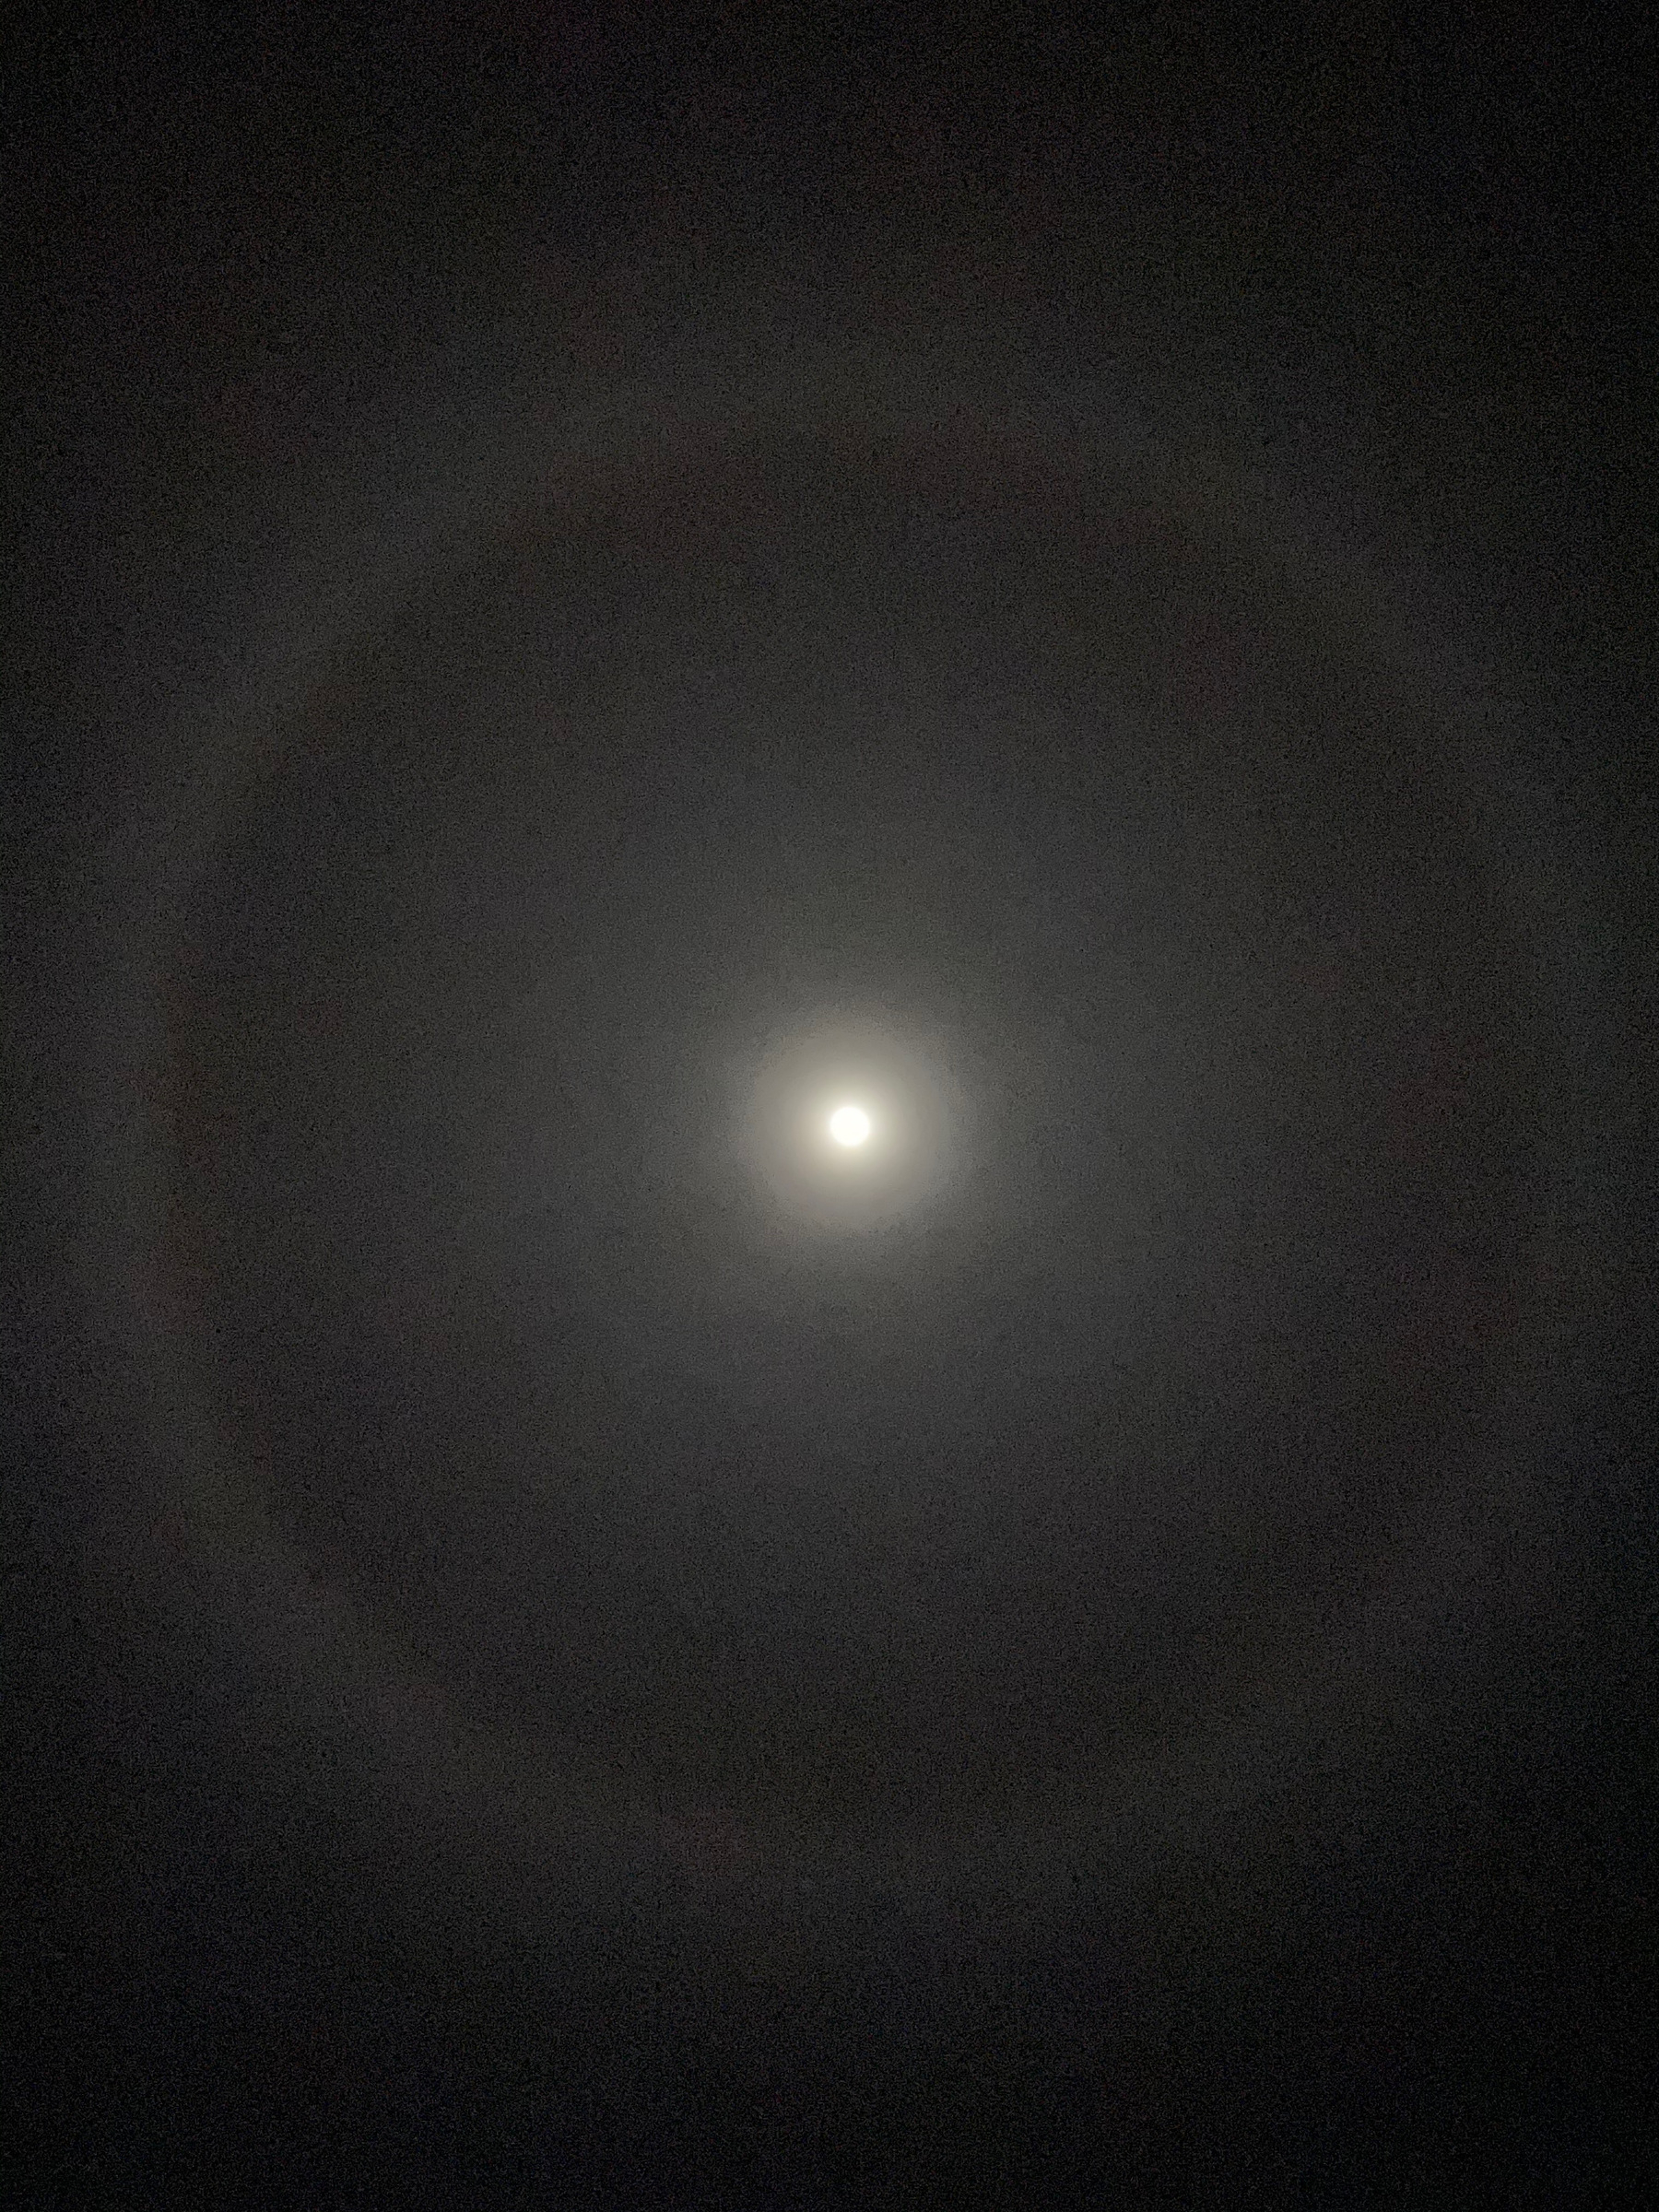 Full moon with a halo around it